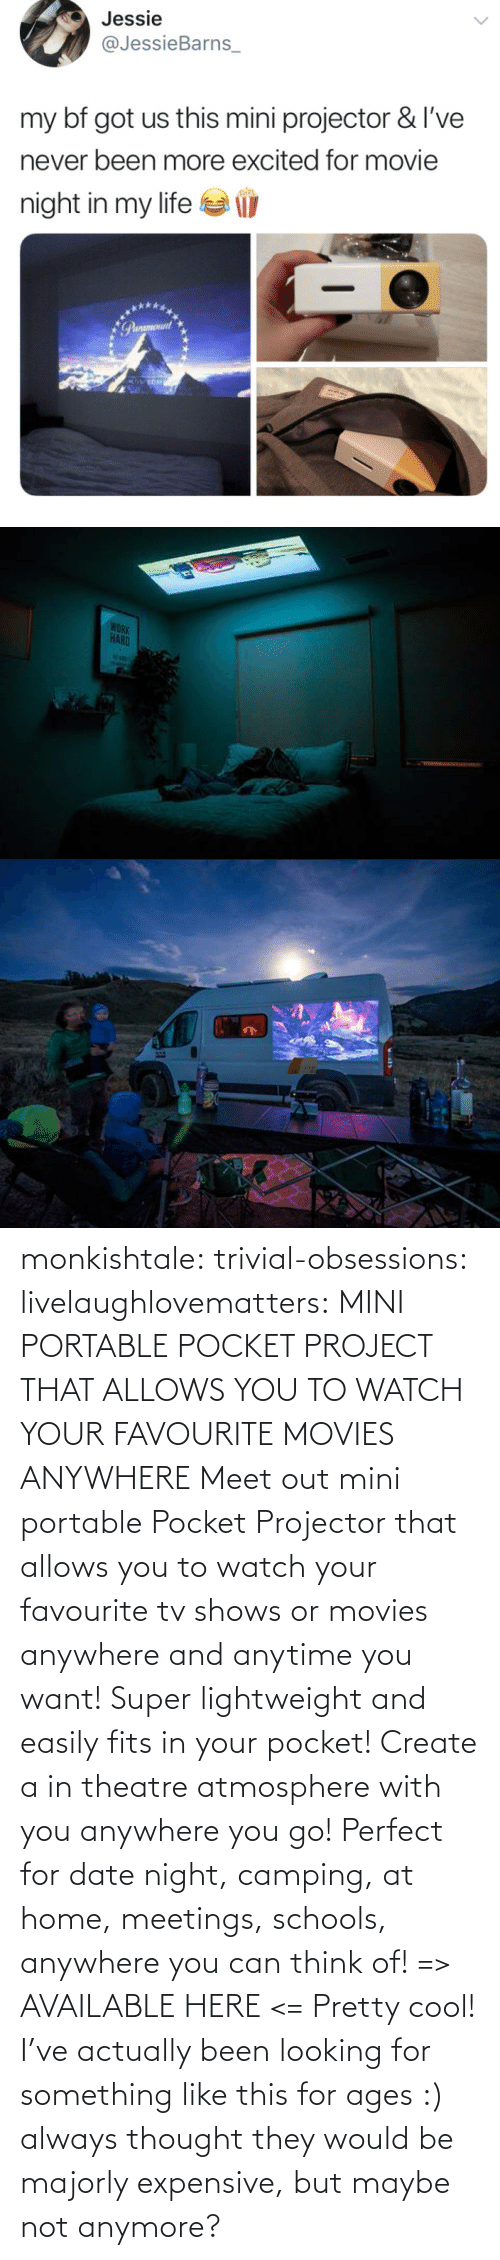 With: monkishtale: trivial-obsessions:   livelaughlovematters:   MINI PORTABLE POCKET PROJECT THAT ALLOWS YOU TO WATCH YOUR FAVOURITE MOVIES ANYWHERE Meet out mini portable Pocket Projector that allows you to watch your favourite tv shows or movies anywhere and anytime you want! Super lightweight and easily fits in your pocket! Create a in theatre atmosphere with you anywhere you go! Perfect for date night, camping, at home, meetings, schools, anywhere you can think of! => AVAILABLE HERE <=    Pretty cool!    I've actually been looking for something like this for ages :) always thought they would be majorly expensive, but maybe not anymore?